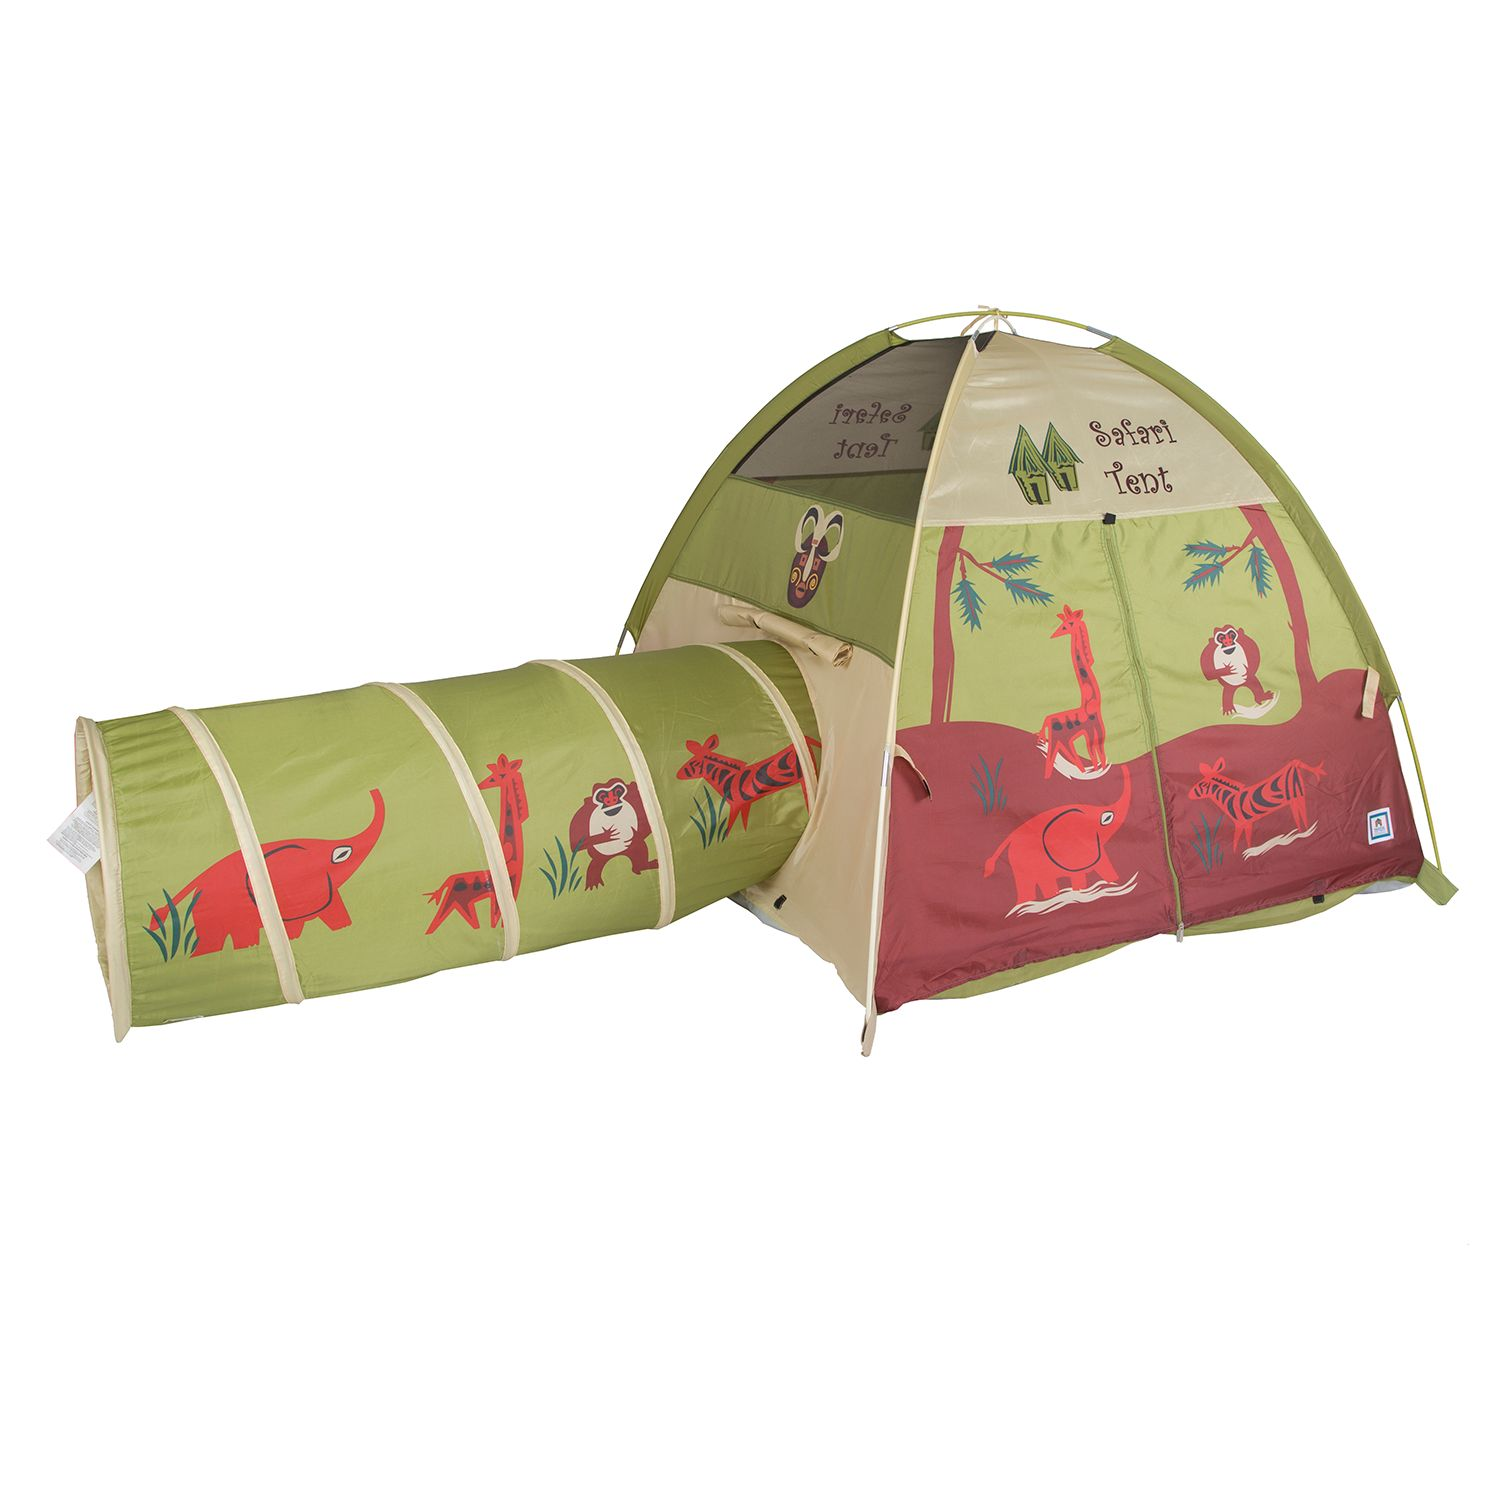 Pacific Play Tents Jungle Safari Tent u0026 Tunnel Combo  sc 1 st  Kohlu0027s & Pacific Play Tents Outdoor Play Toys Toys | Kohlu0027s